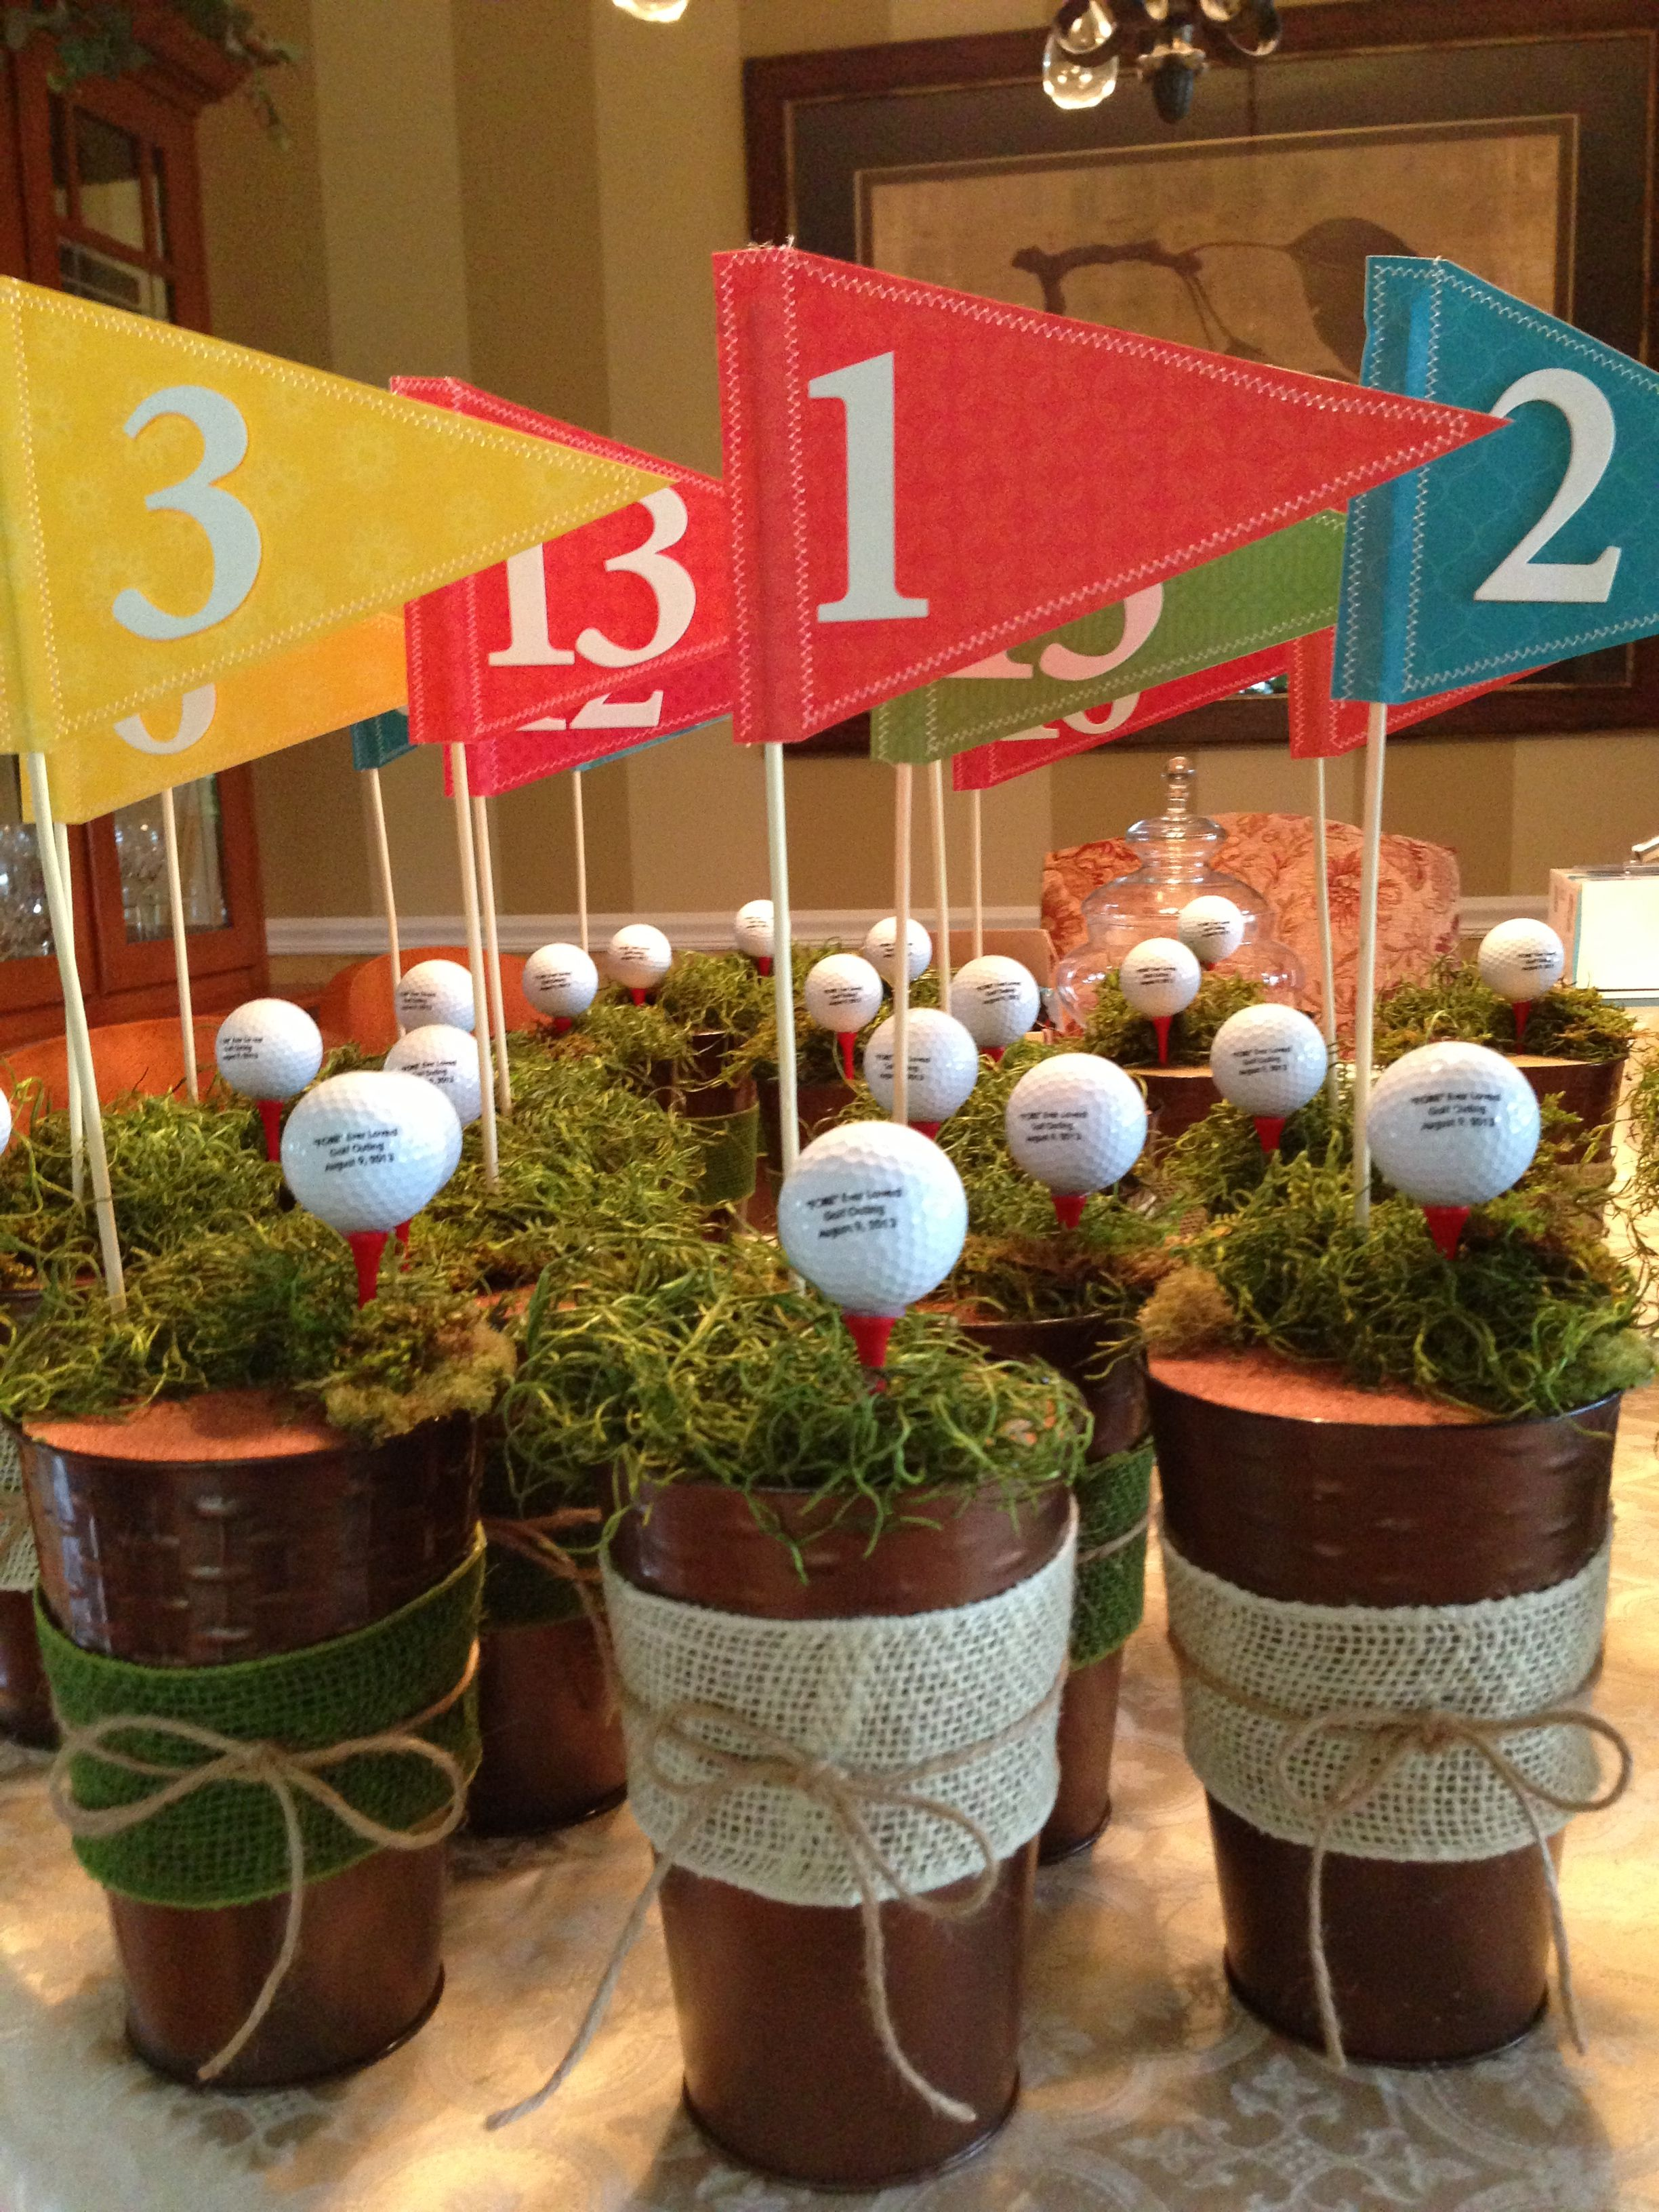 Cute golf centerpieces for a gofers party More at lorisgolfshoppe